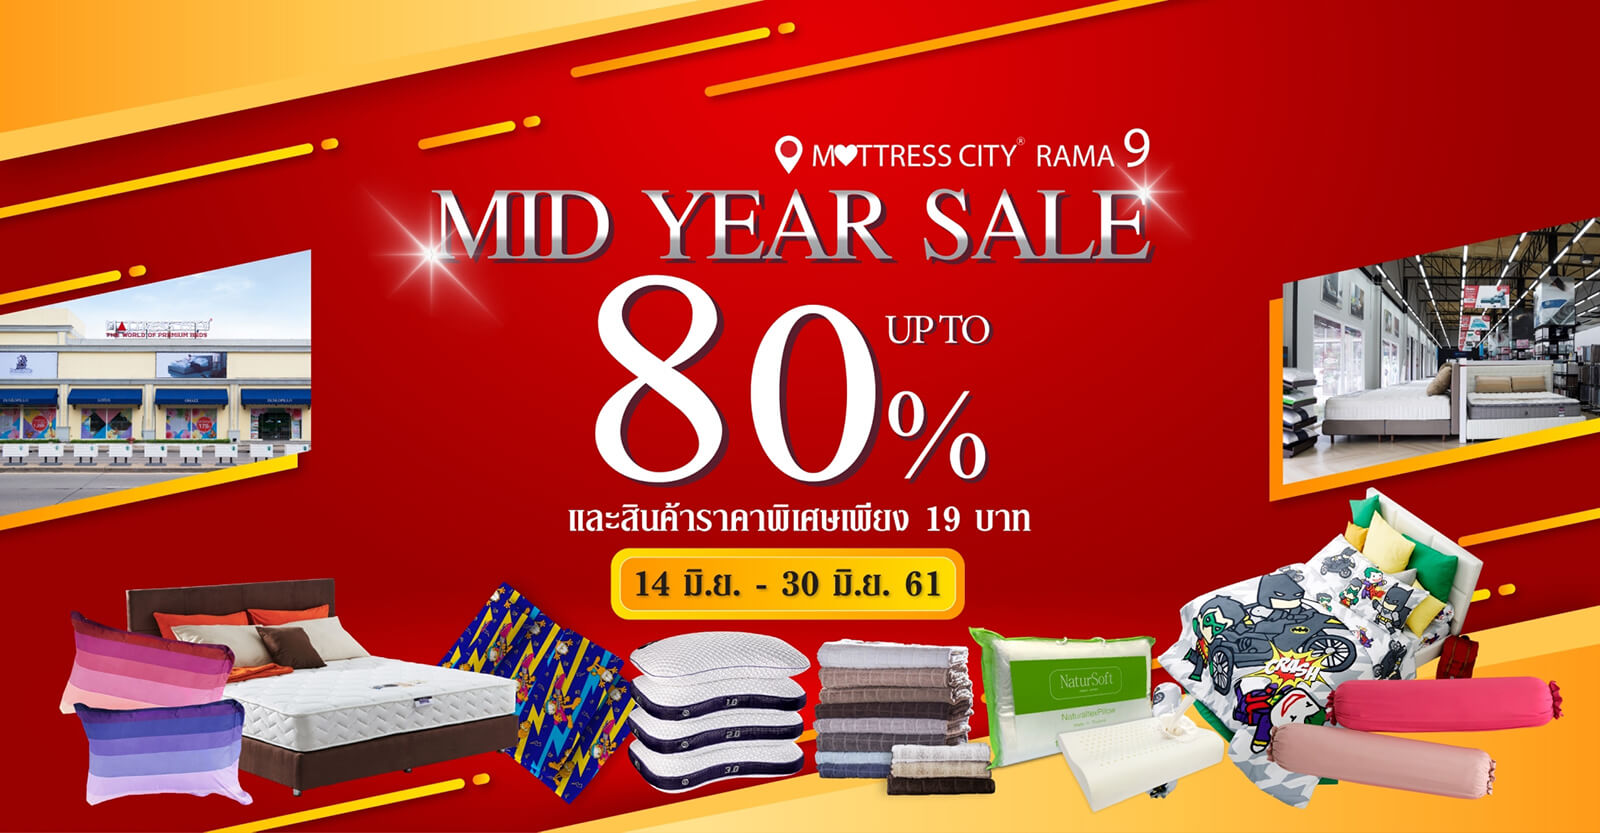 Mattress City Mid-Year Sale Promotion